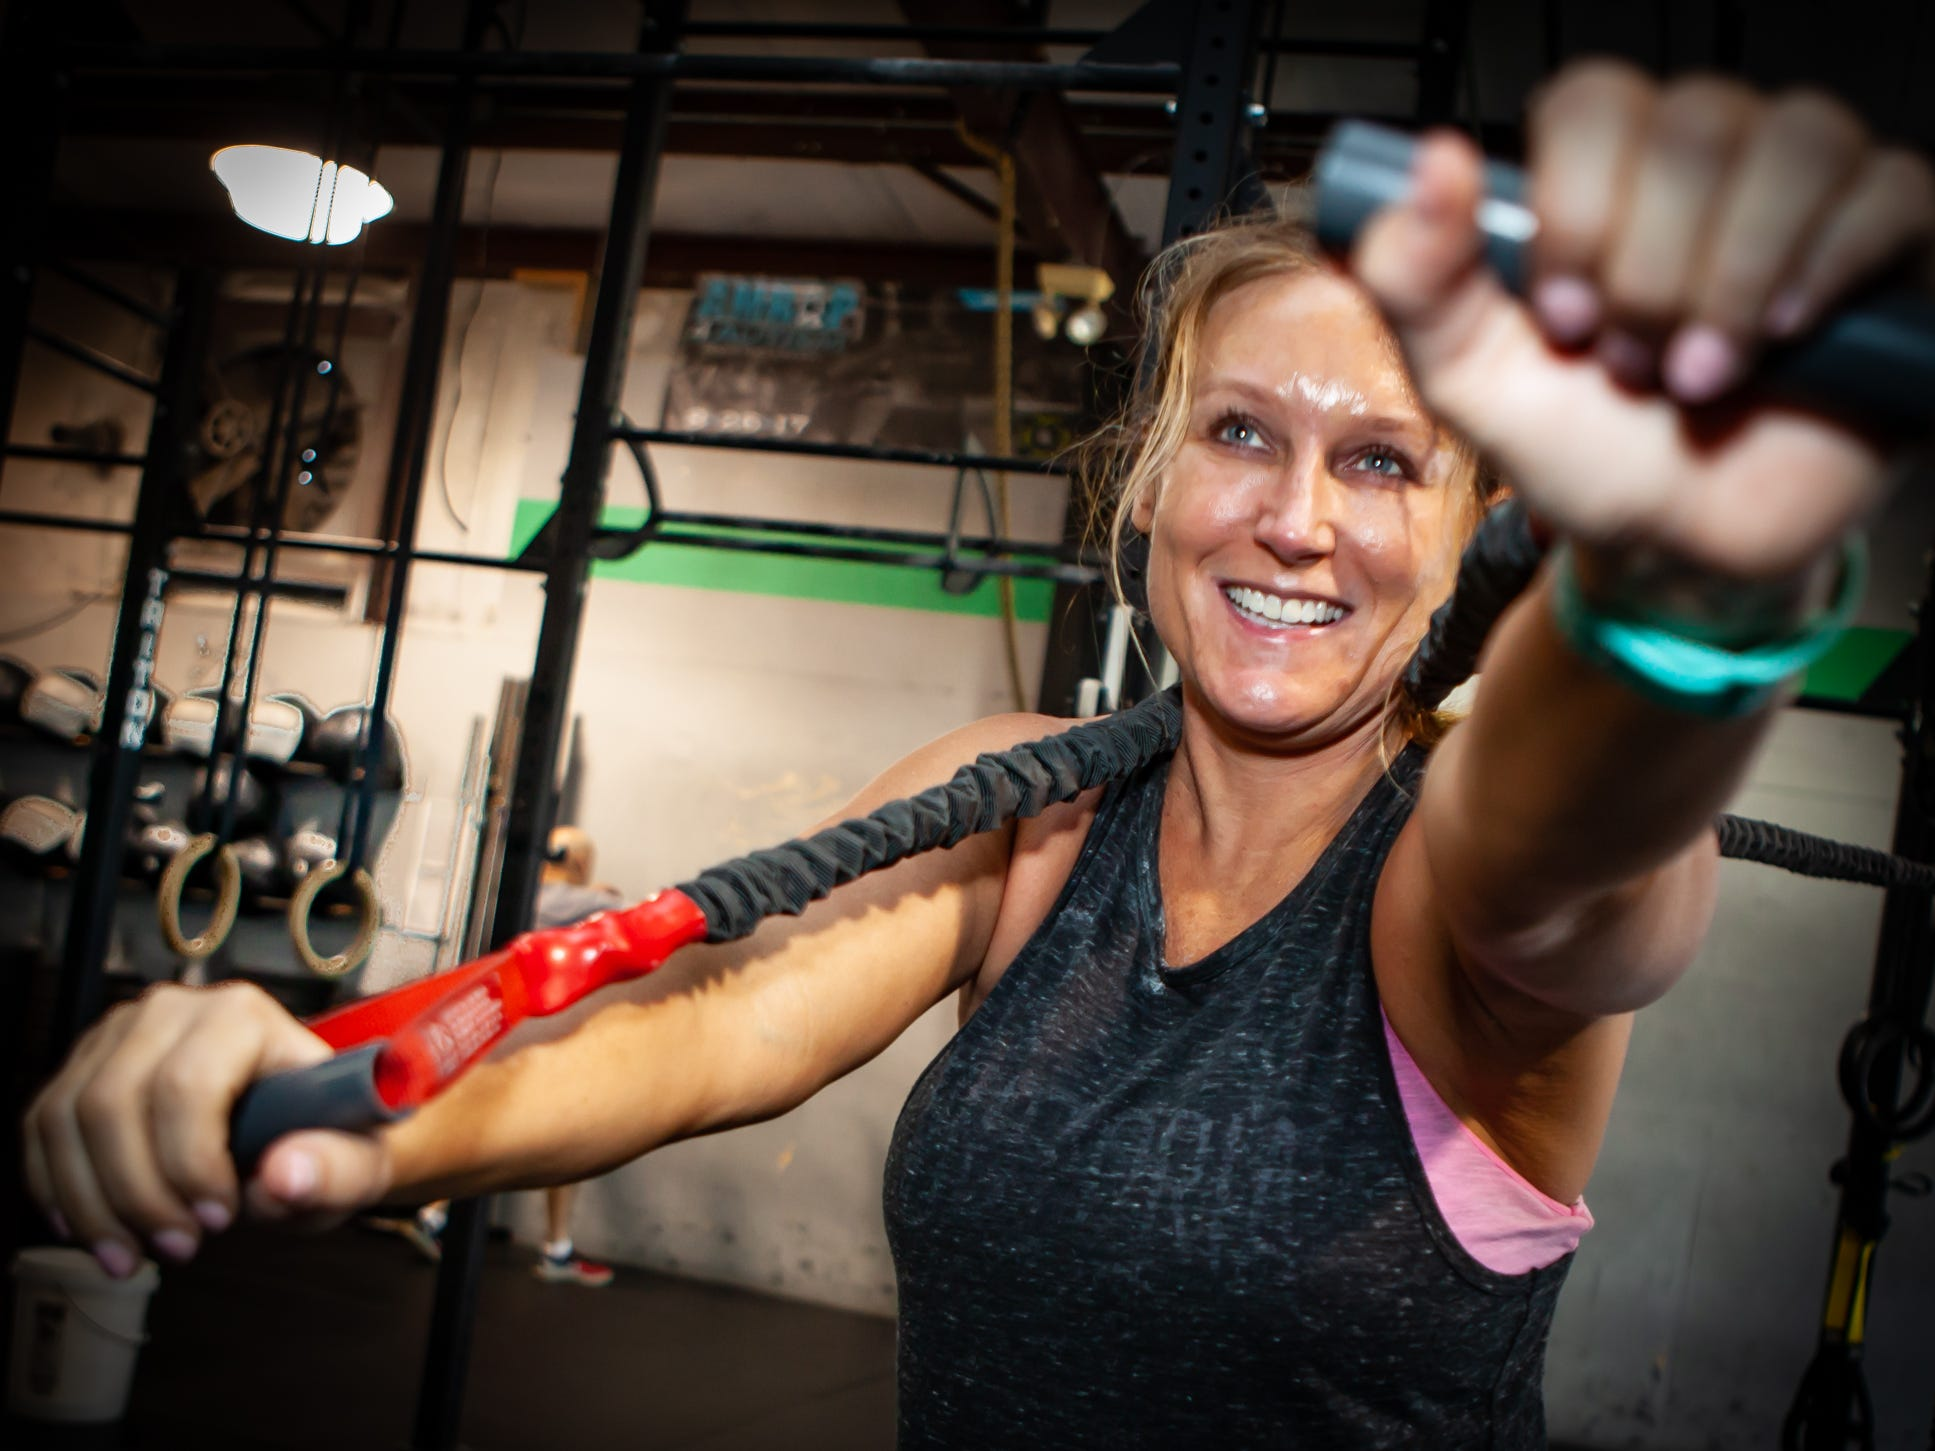 Jenni Ricks works out at the CrossFit Barbell Batallion in downtown Murfreesboro. She is one of the Masters athletes (between the age of 40 and 50)